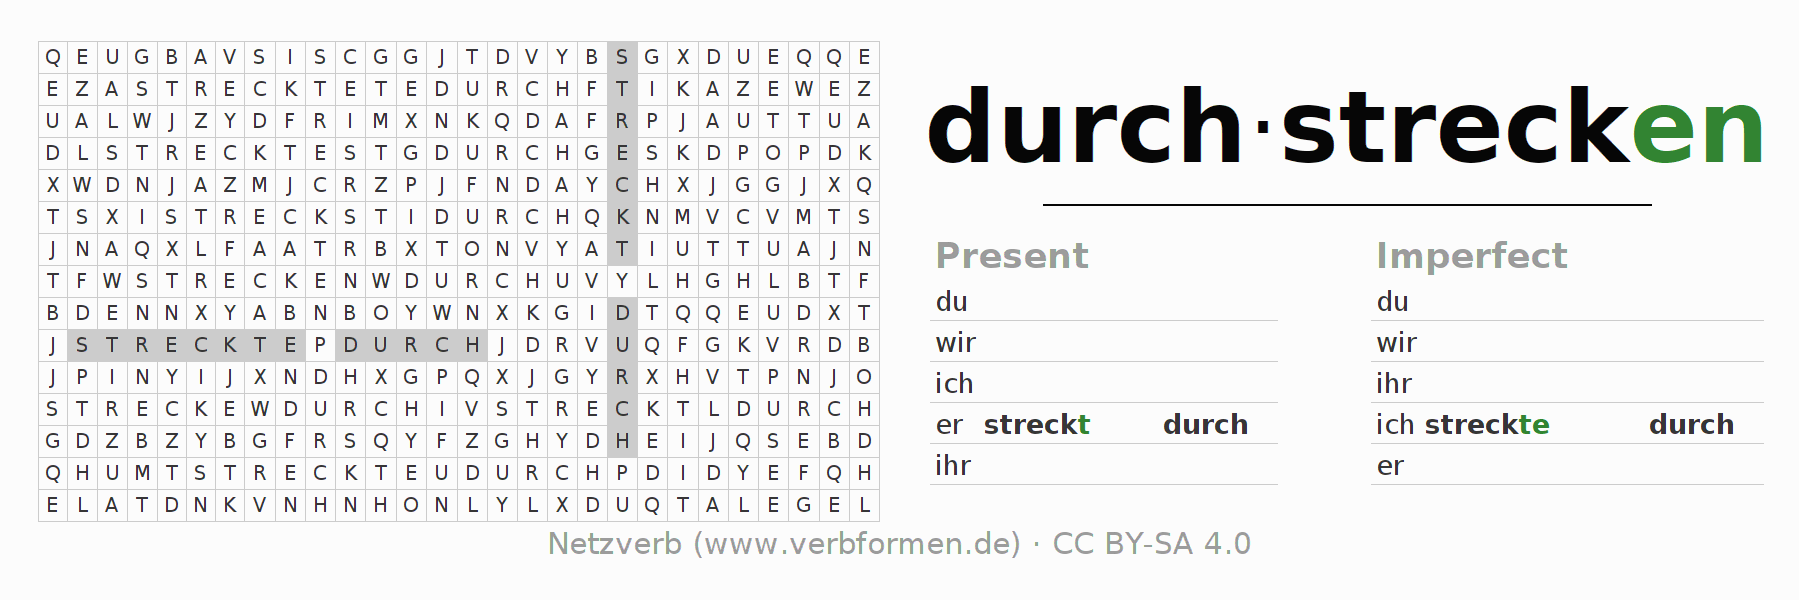 Word search puzzle for the conjugation of the verb durchstrecken